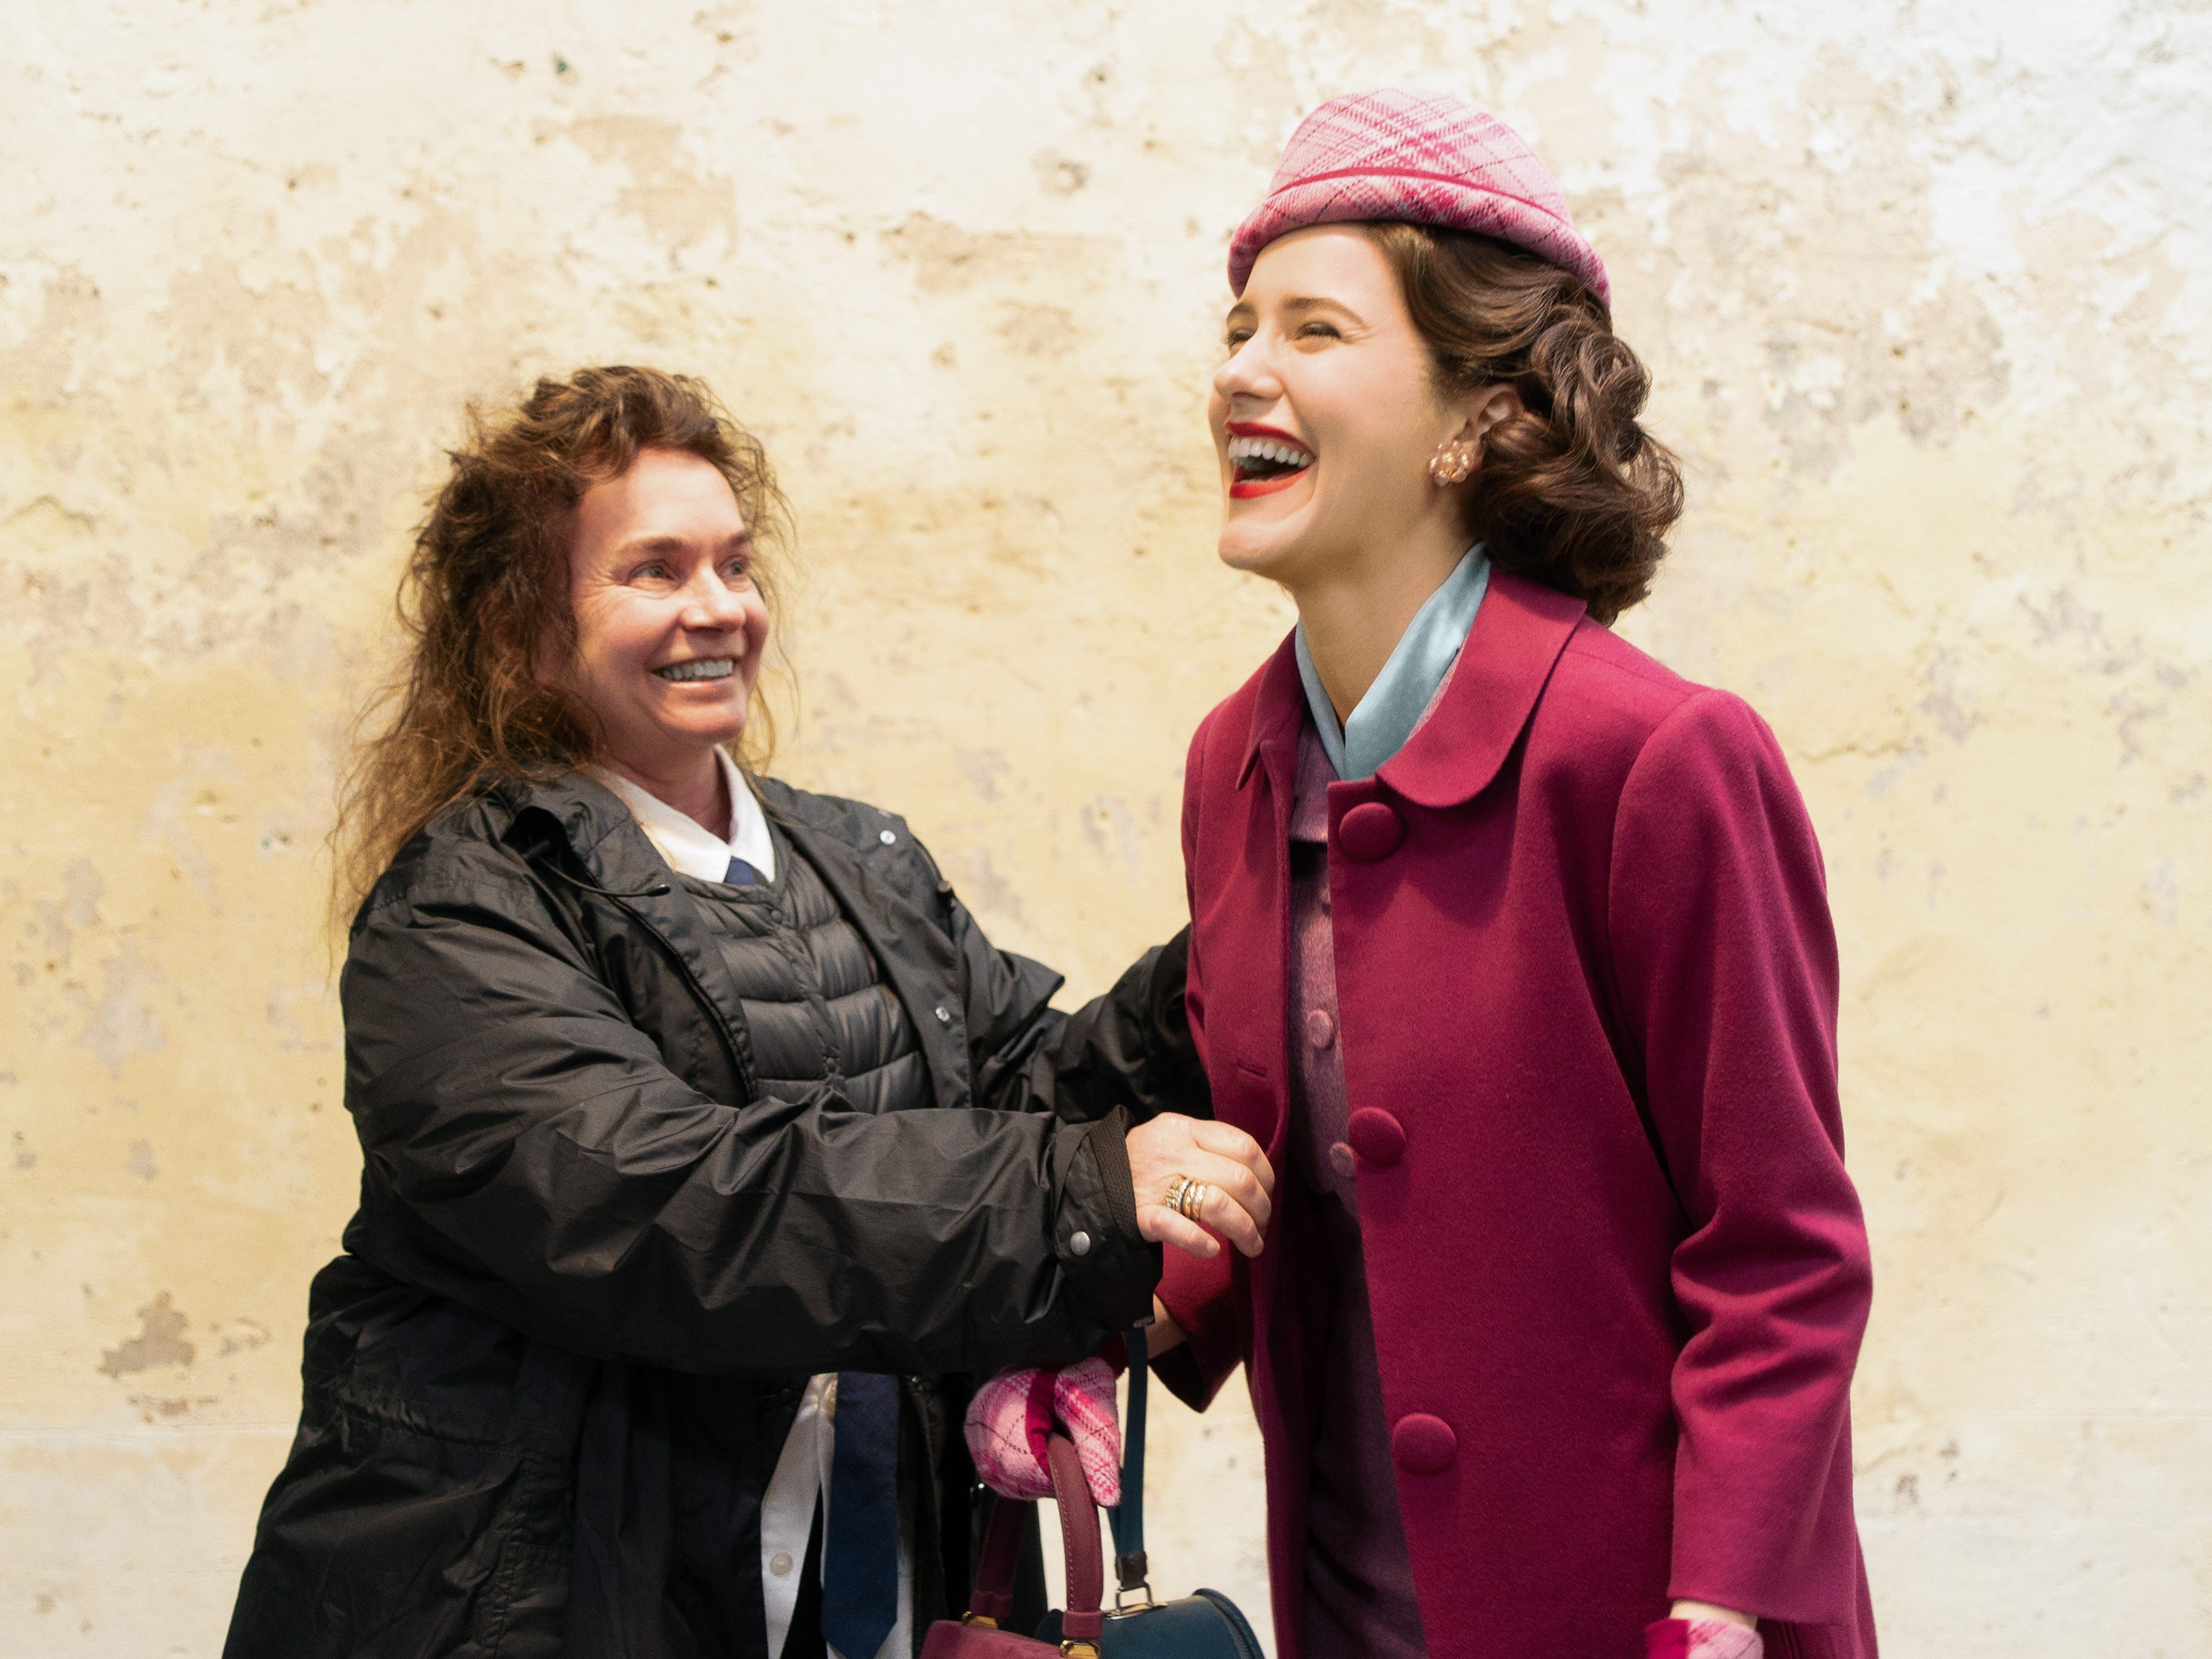 """Behind-the-scenes of the filming season two of the Amazon Prime Video series """"The Marvelous Mrs. Maisel,"""" starring Rachel Brosnahan stars as Miriam """"Midge"""" Maisel."""